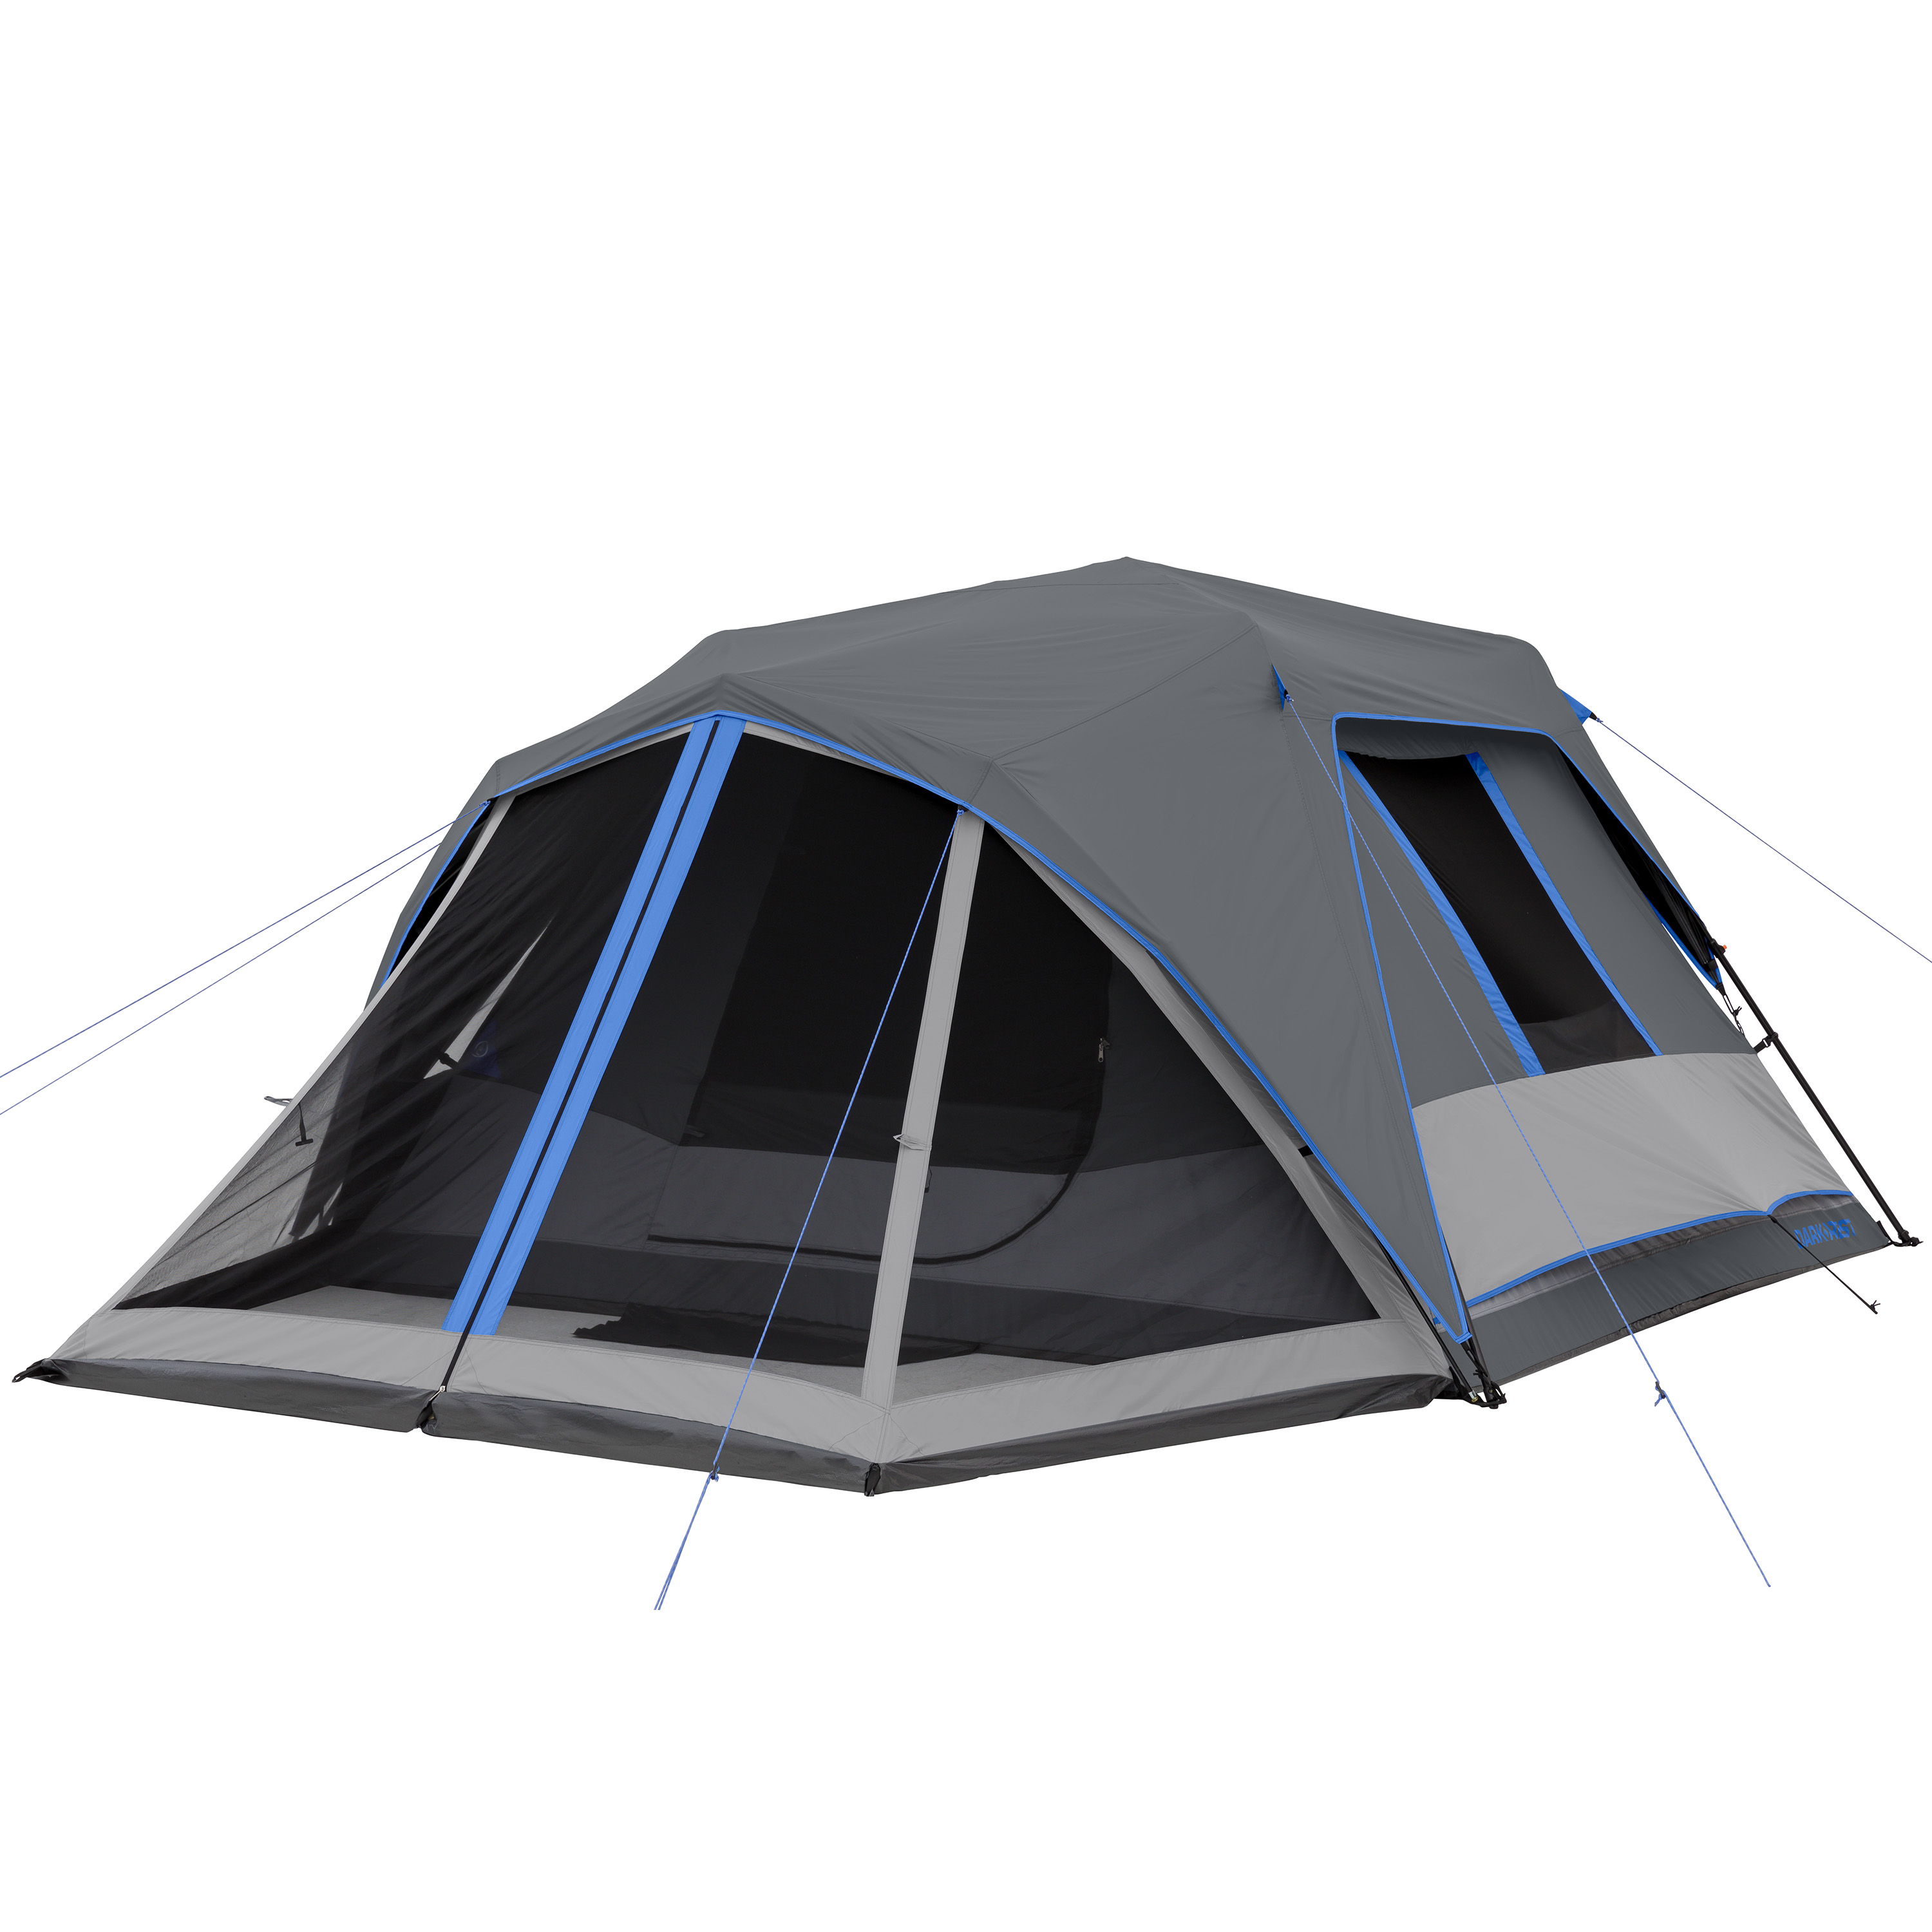 Details about OZARK TRAIL 6 PERSON INSTANT DARKREST CABIN TENT WITH LIGHT